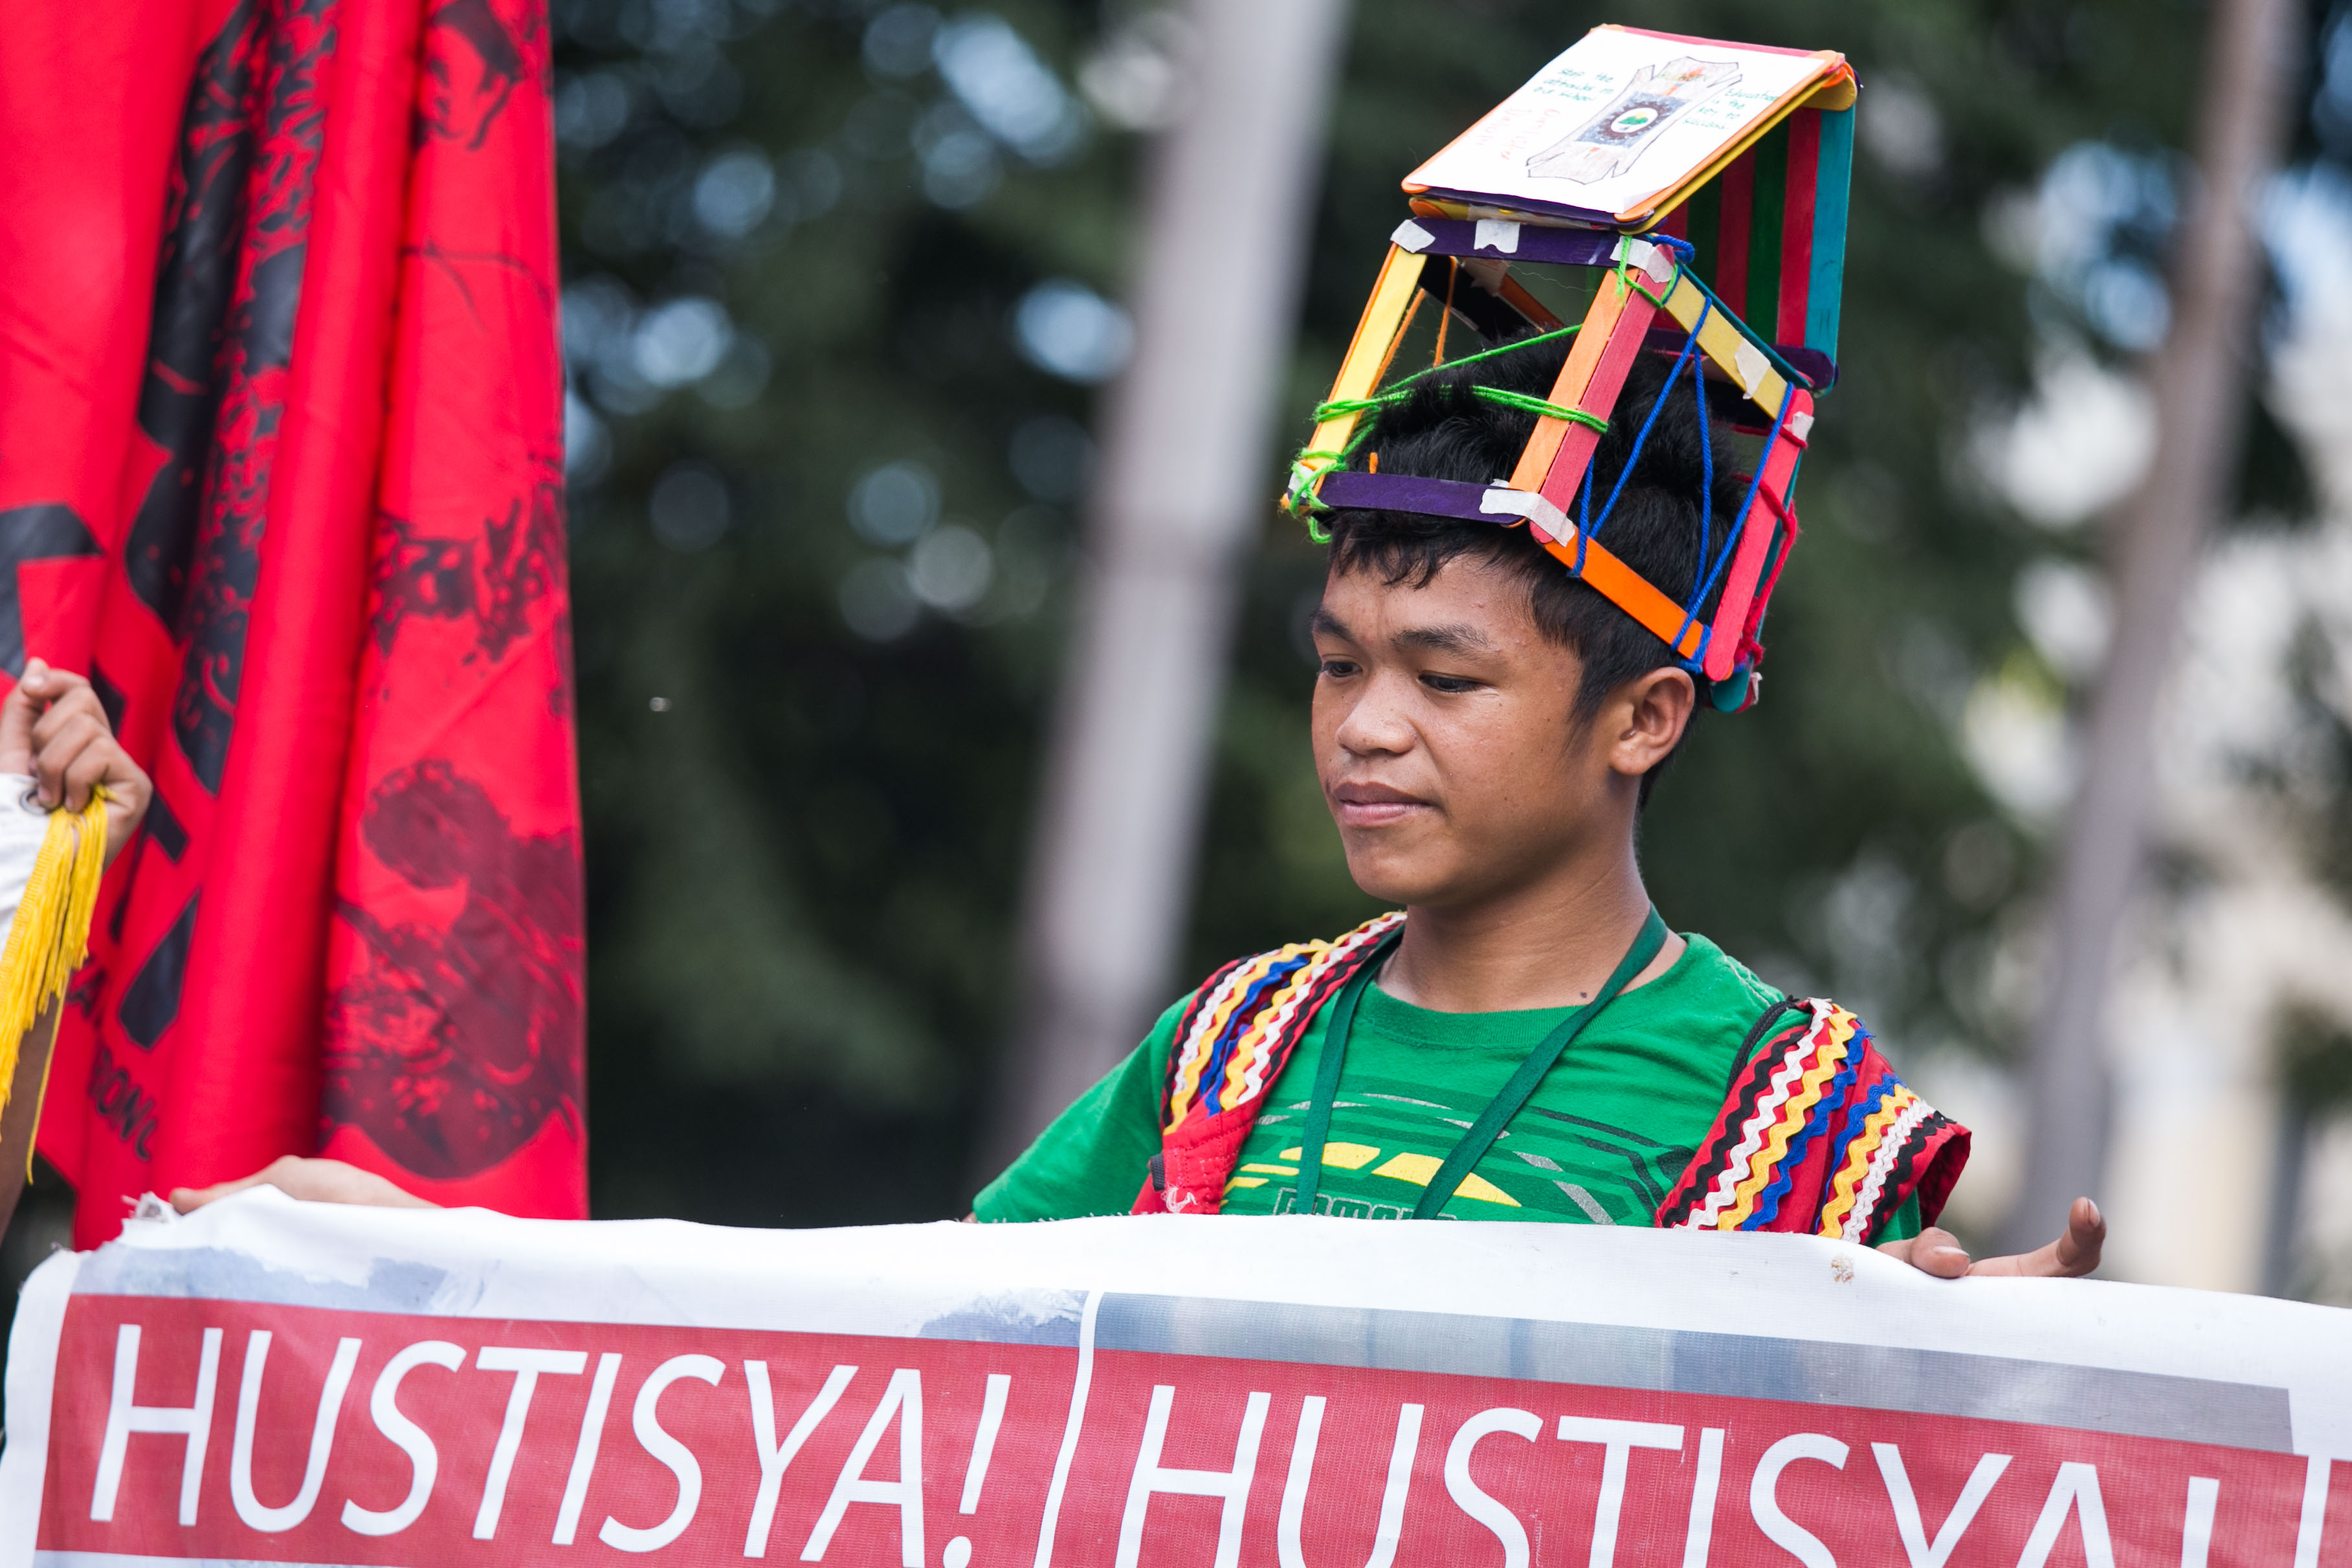 HUSTISYA. Lumads hold an anti-APEC rally at Liwasang Bonifacio on November 13, 2015. The protest is part of Manilakbayan, their month-long camp-out in Manila, where they demanded for the 'demilitarization' of their schools and justice for their fellow Lumads who were allegedly killed by paramilitary groups in Mindanao. Photo by Pat Nabong/Rappler